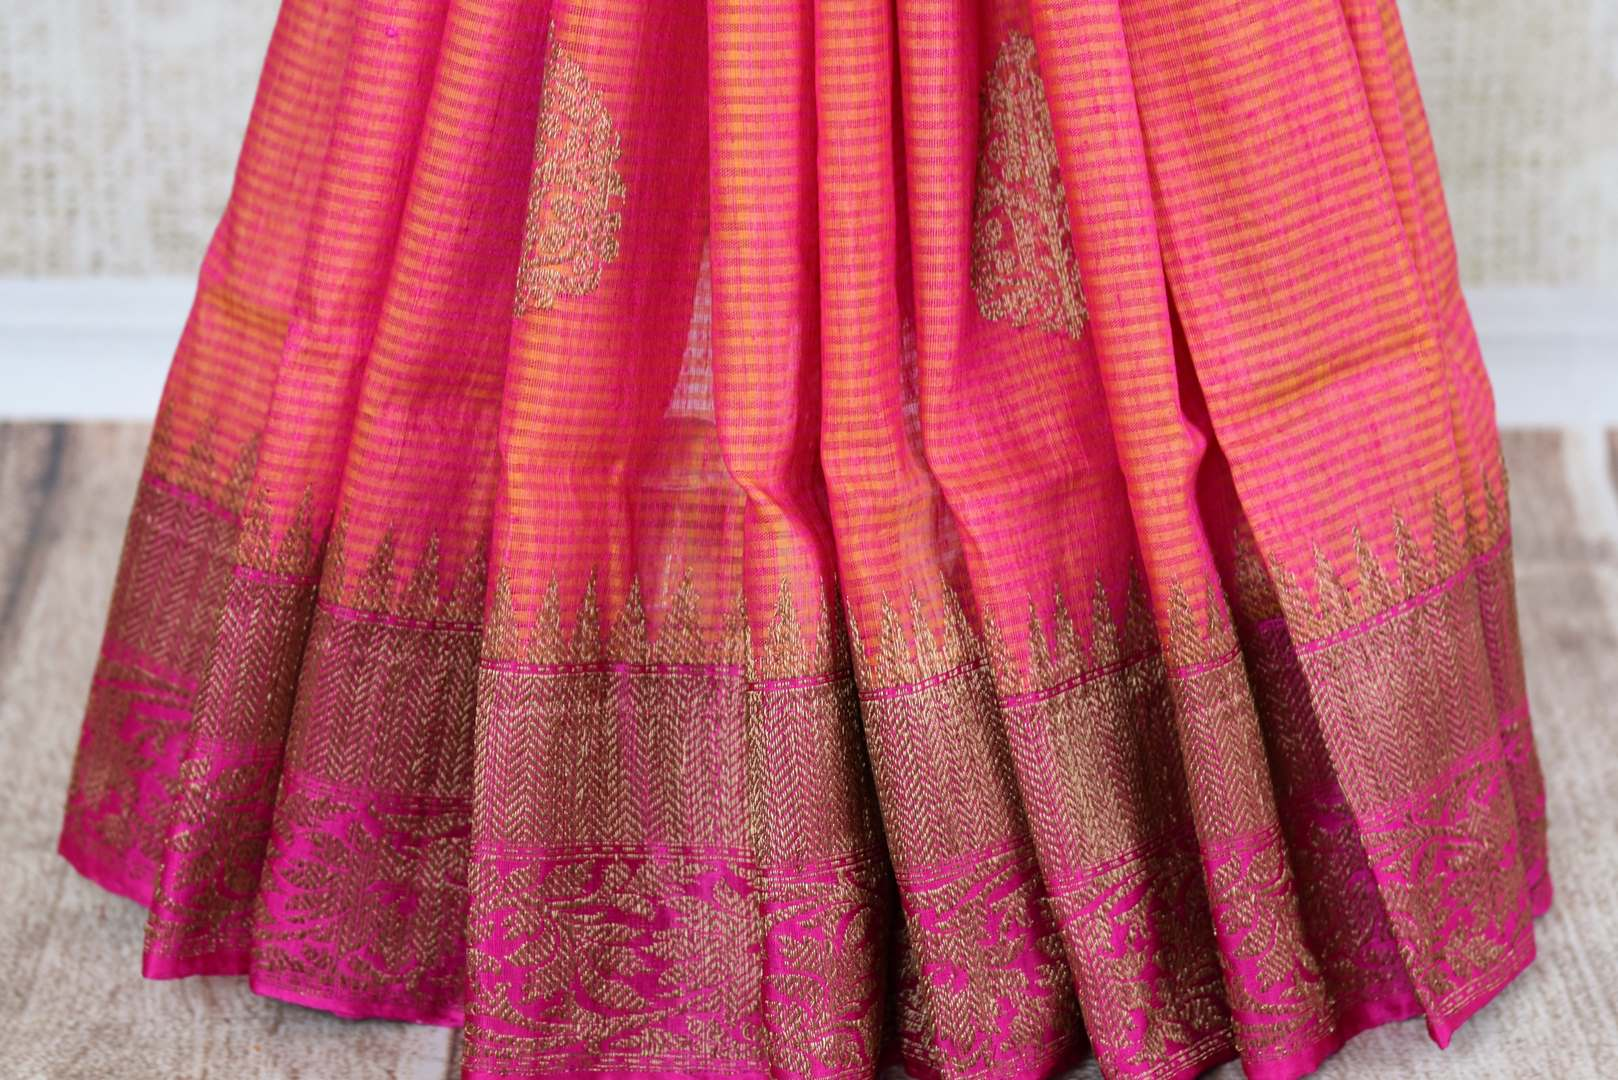 Buy orange tussar katan Banarasi sari online in USA with antique zari border. The saree is a perfect traditional drape for parties and festivals. Spoil yourself with an exquisite collection of Indian Banarasi sarees in USA available at Pure Elegance Indian clothing store. -pleats